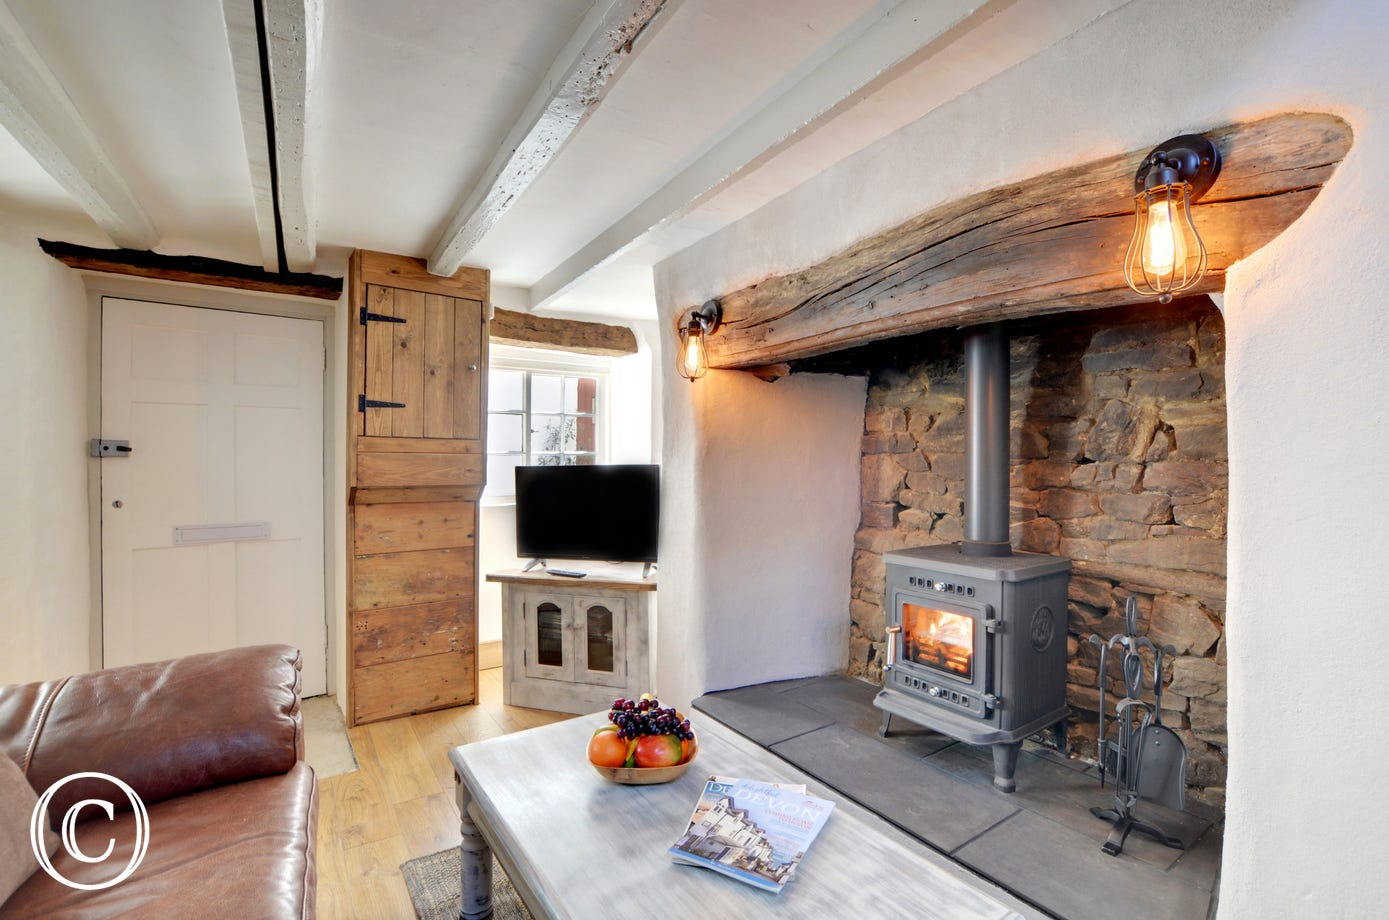 The front door opens directly into an open plan living space with low beams and a woodburner for the cooler seasons